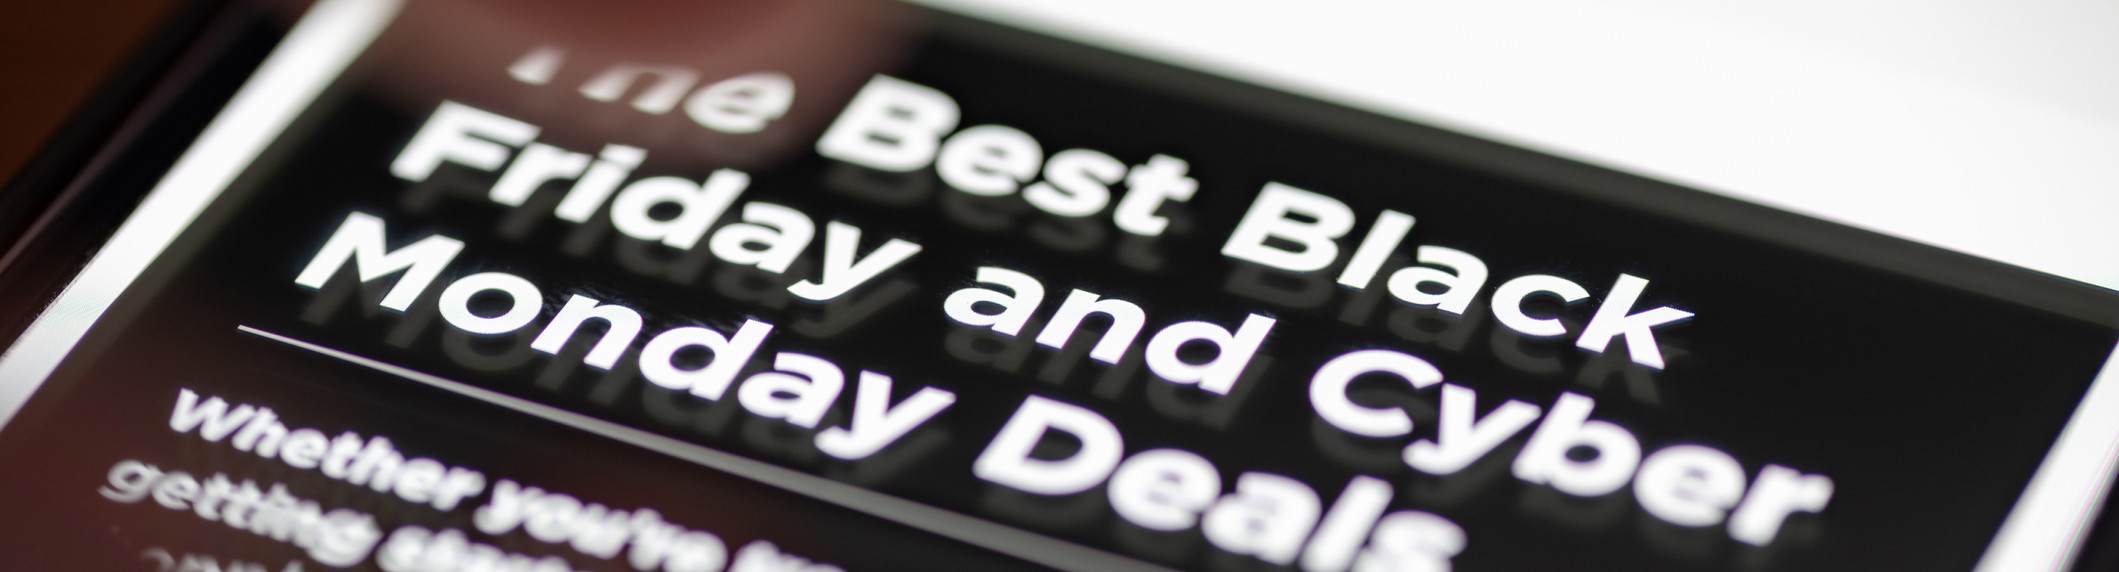 Are You Ready To Get The Best Black Friday Deals Online In 2020 Here S Everything You Need To Know